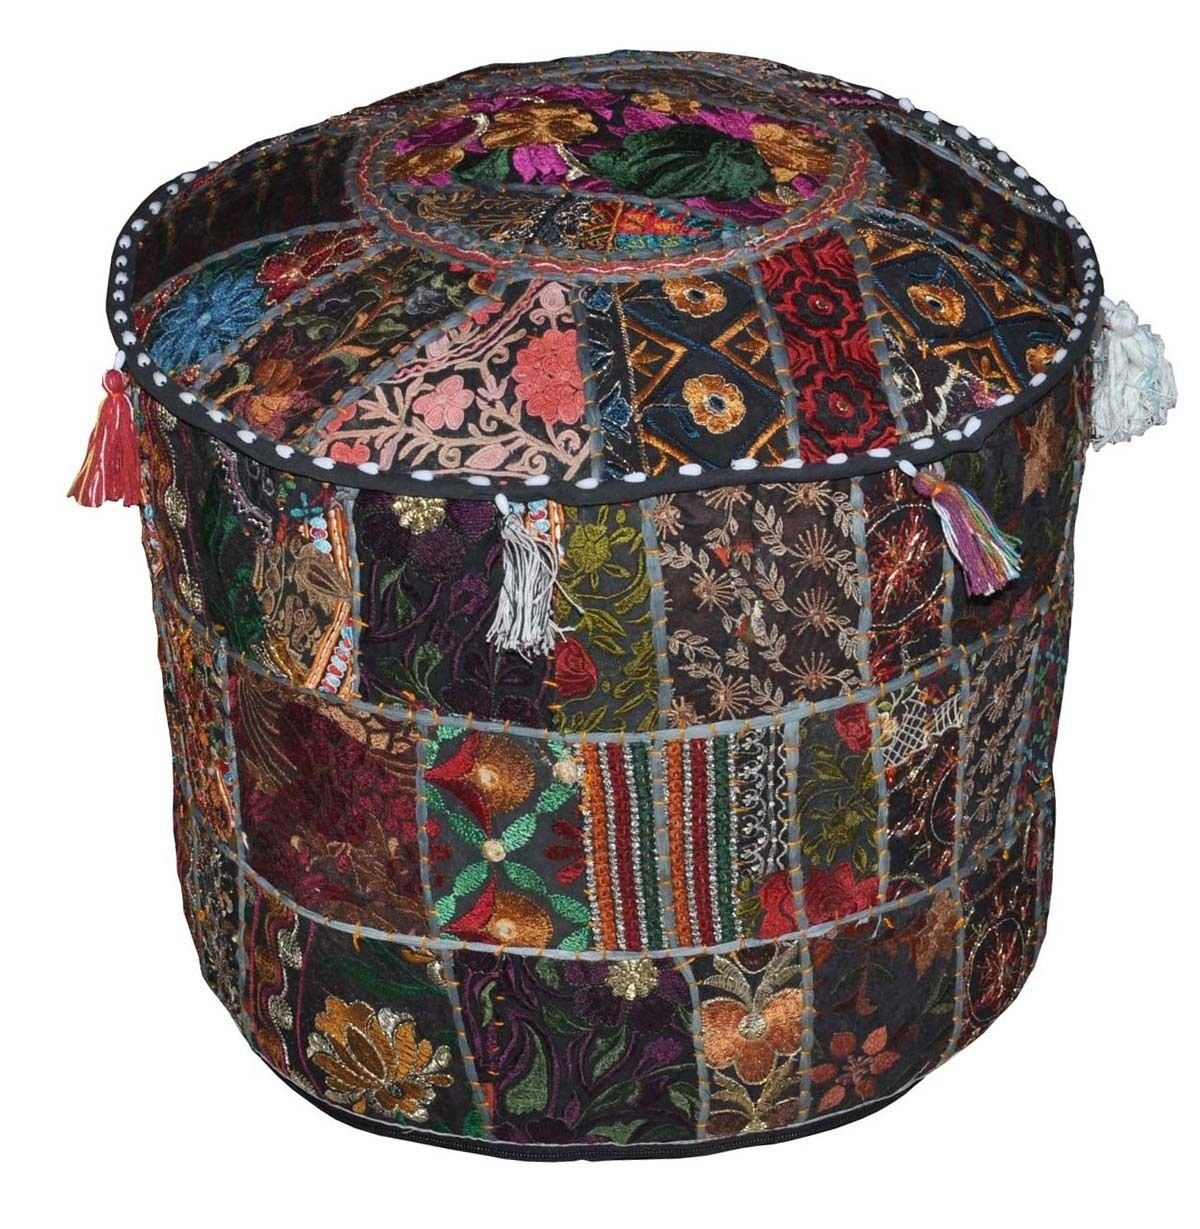 Bohemian Indian Pouf Ottoman Patchwork Pouf Cocktail Living Room Bean Bag Hassock Cover Floorseat Stool 12 x 16 Inch by BhagyodayFashions